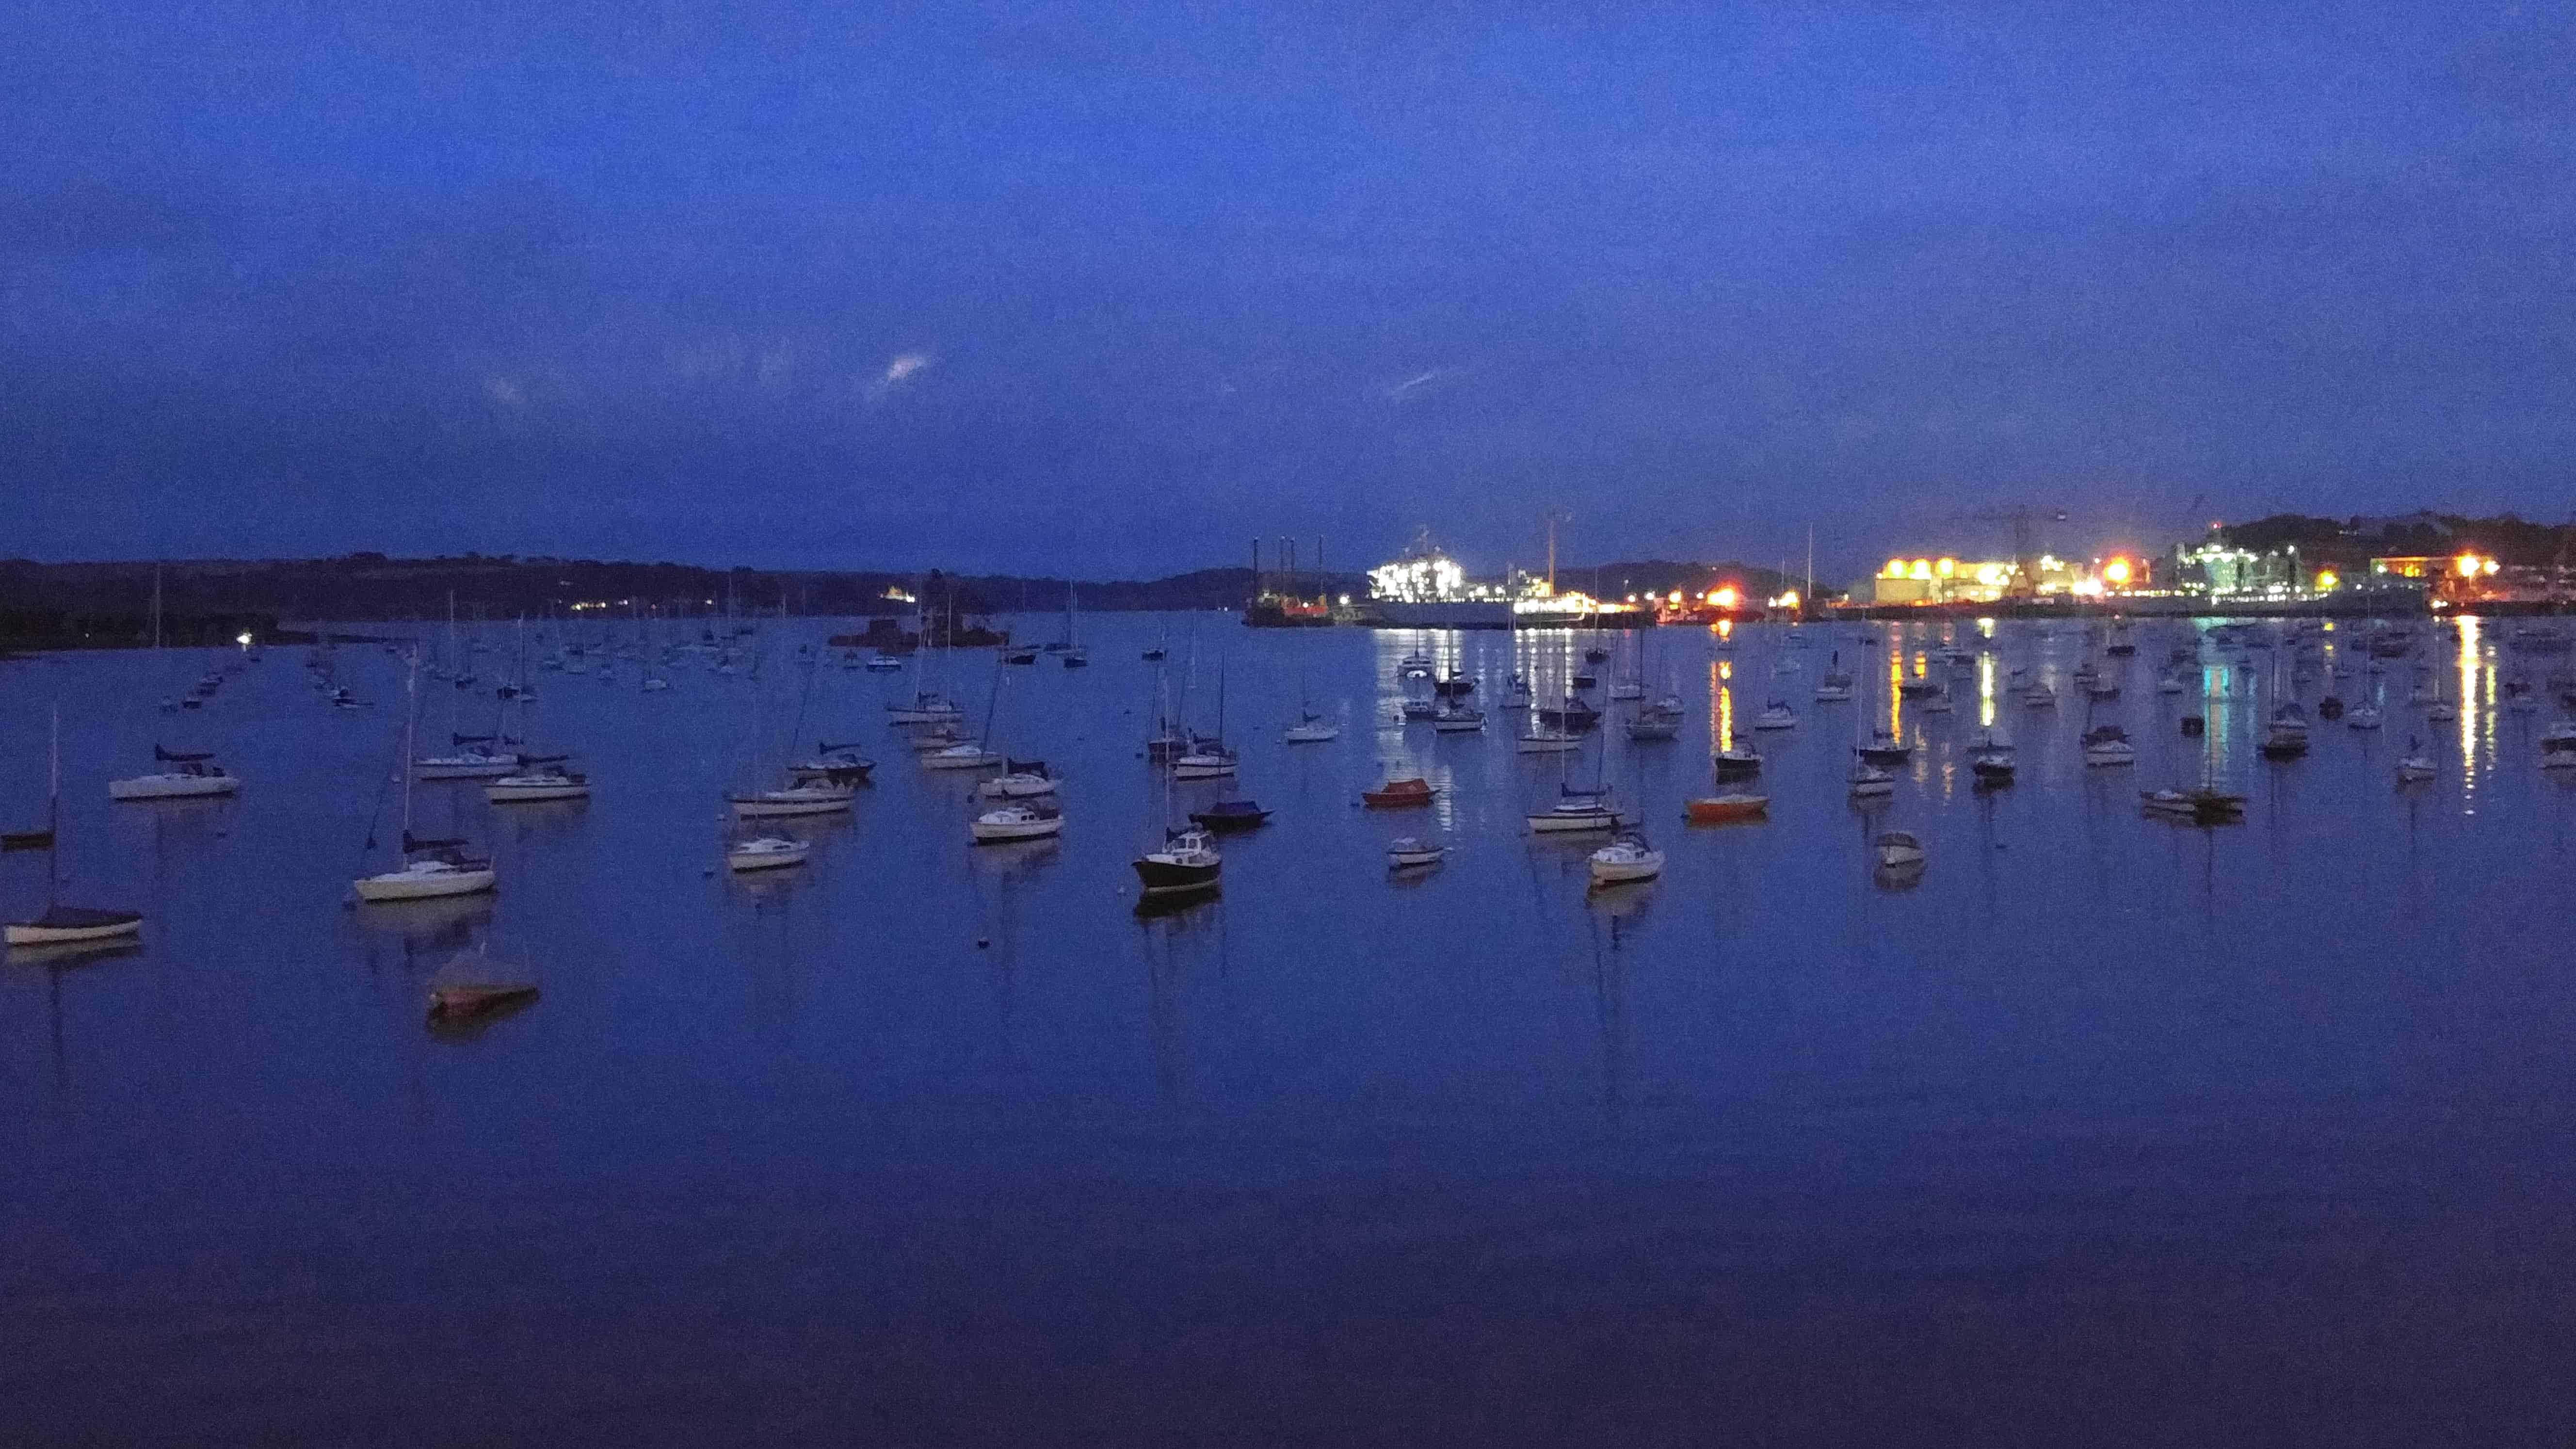 Harbor View at Night from The Greenbank in Falmouth